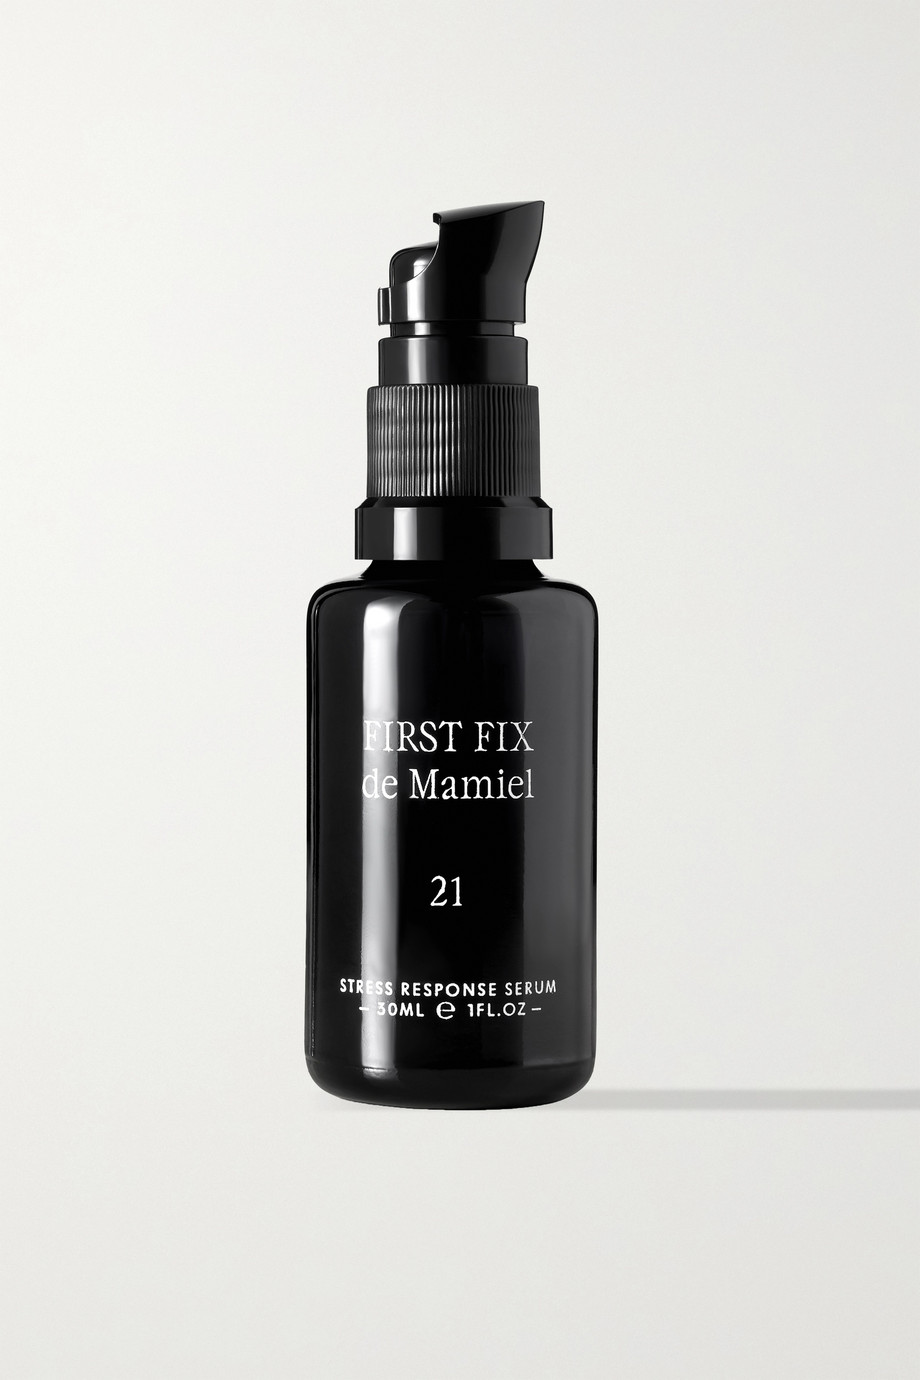 DE MAMIEL First Fix Stress Response Serum, 30ml